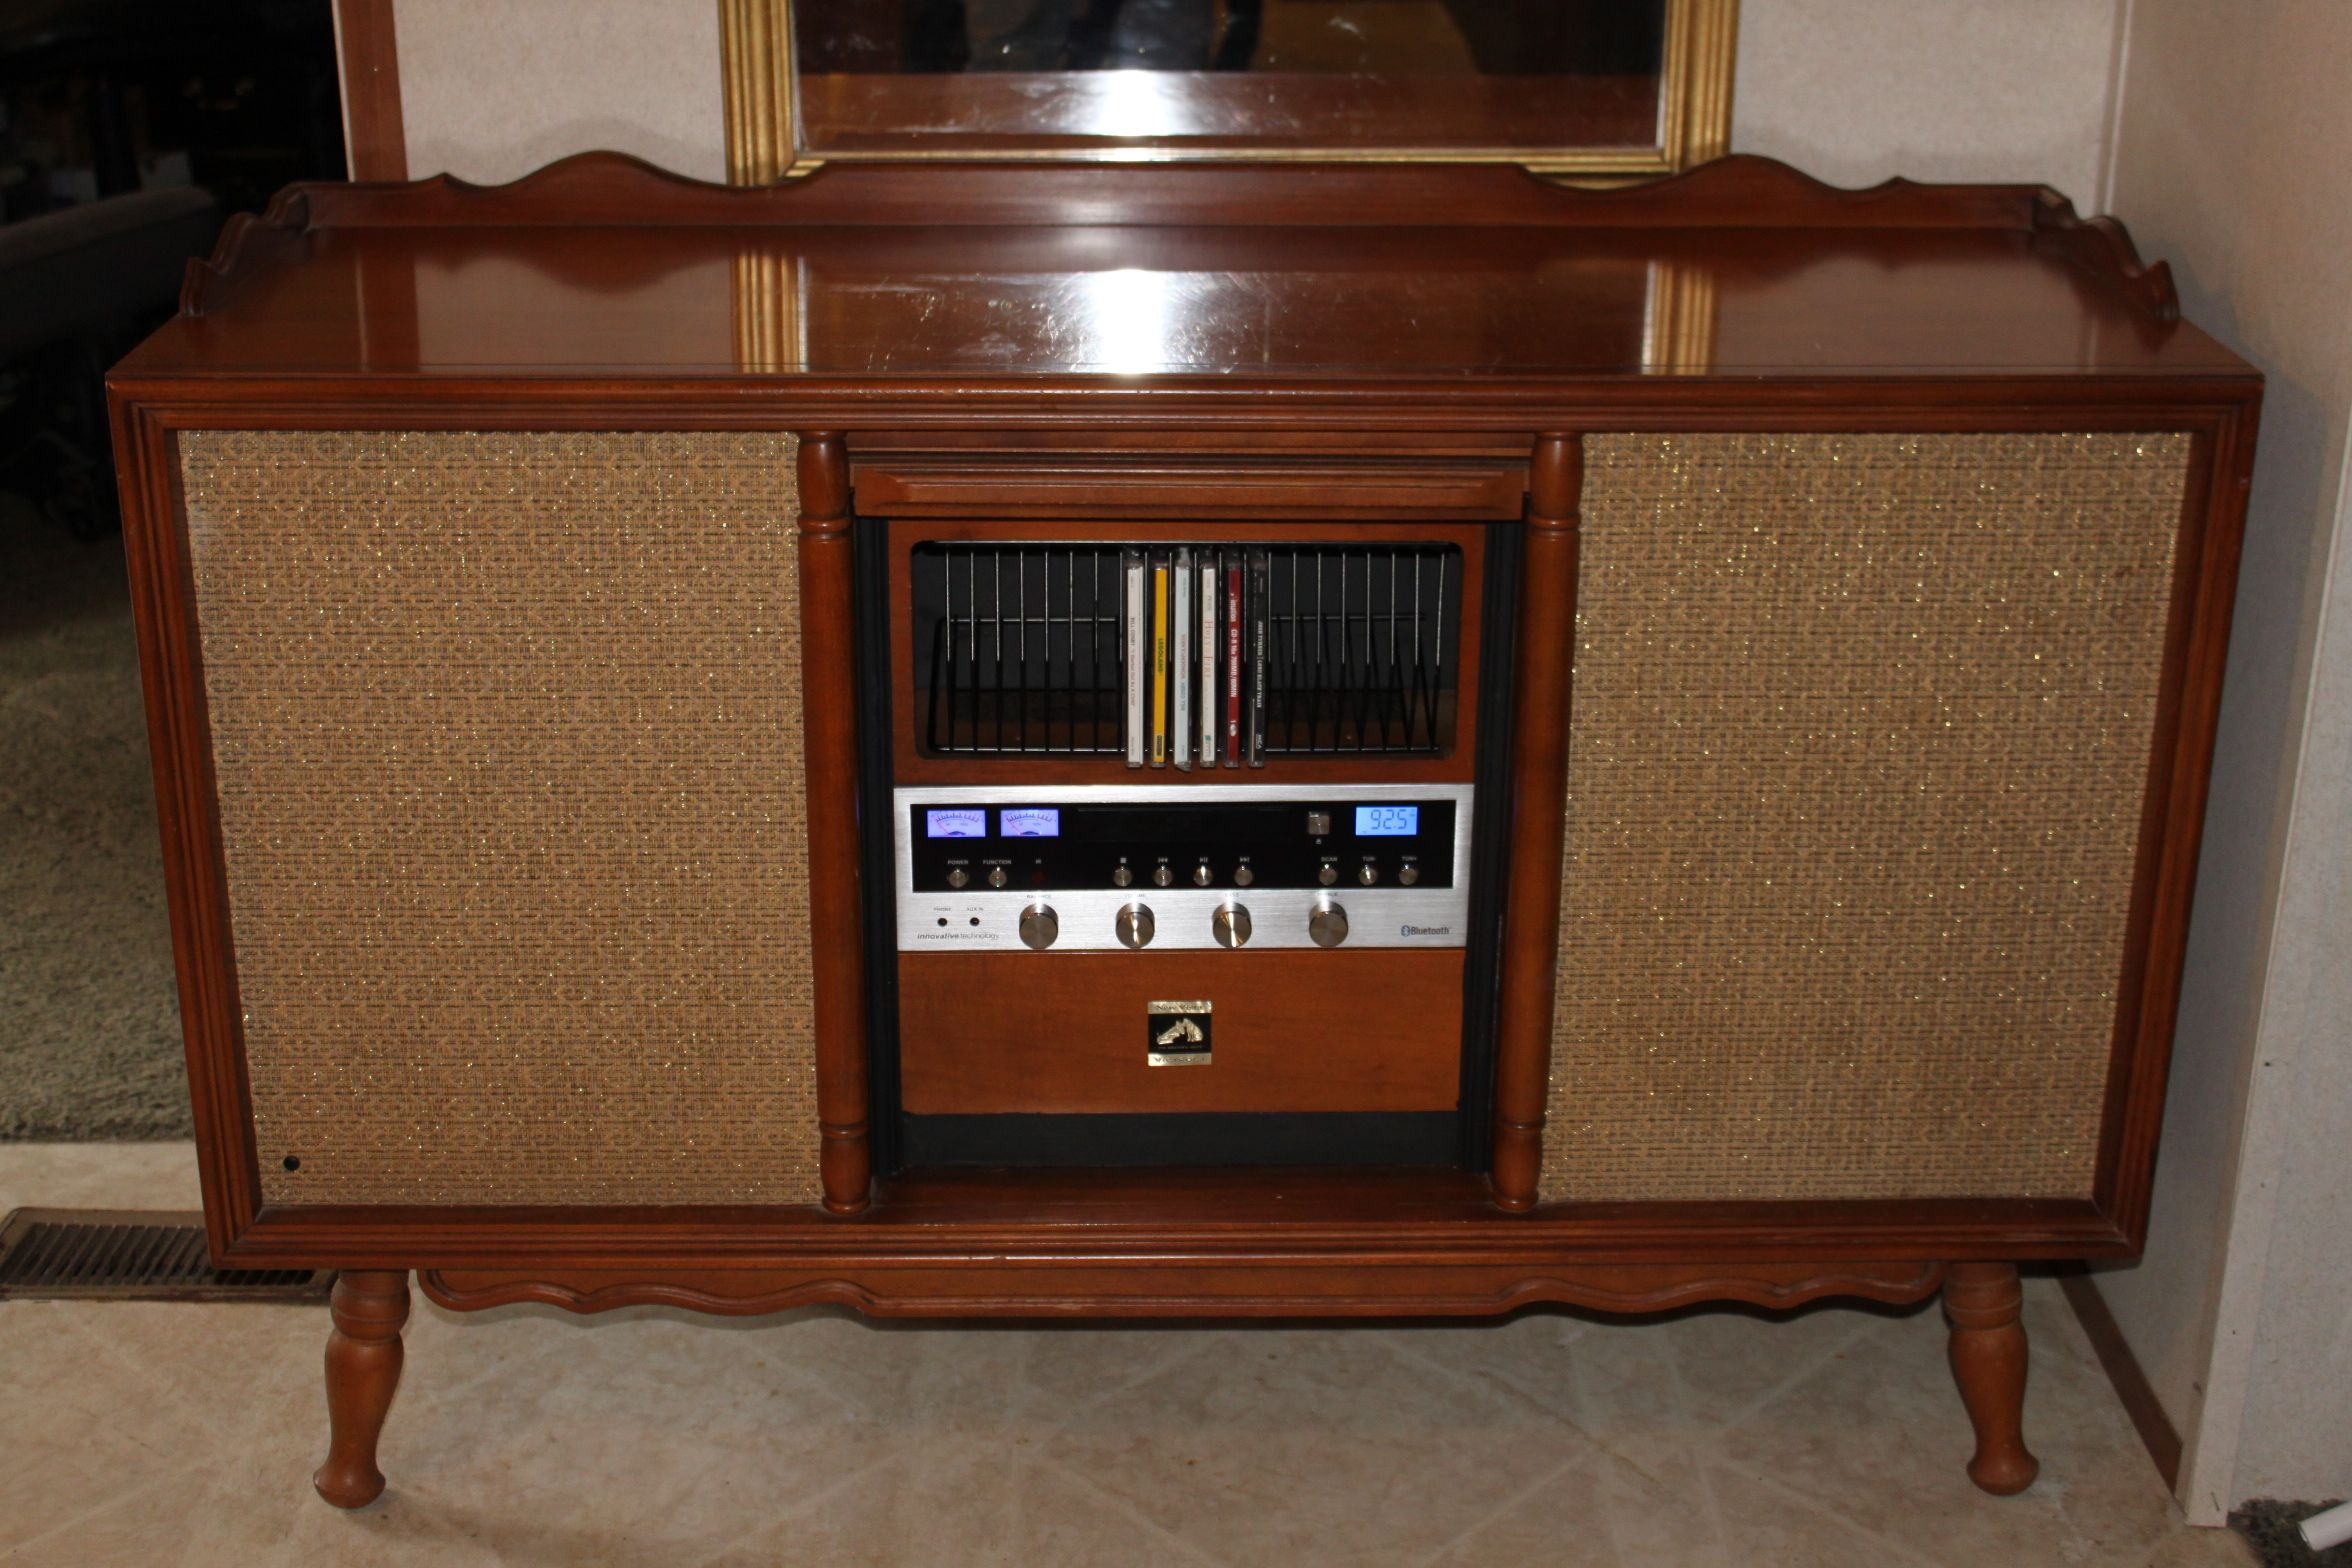 1960s RCA Console Stereo retrofitted with an AM/FM, CD Player